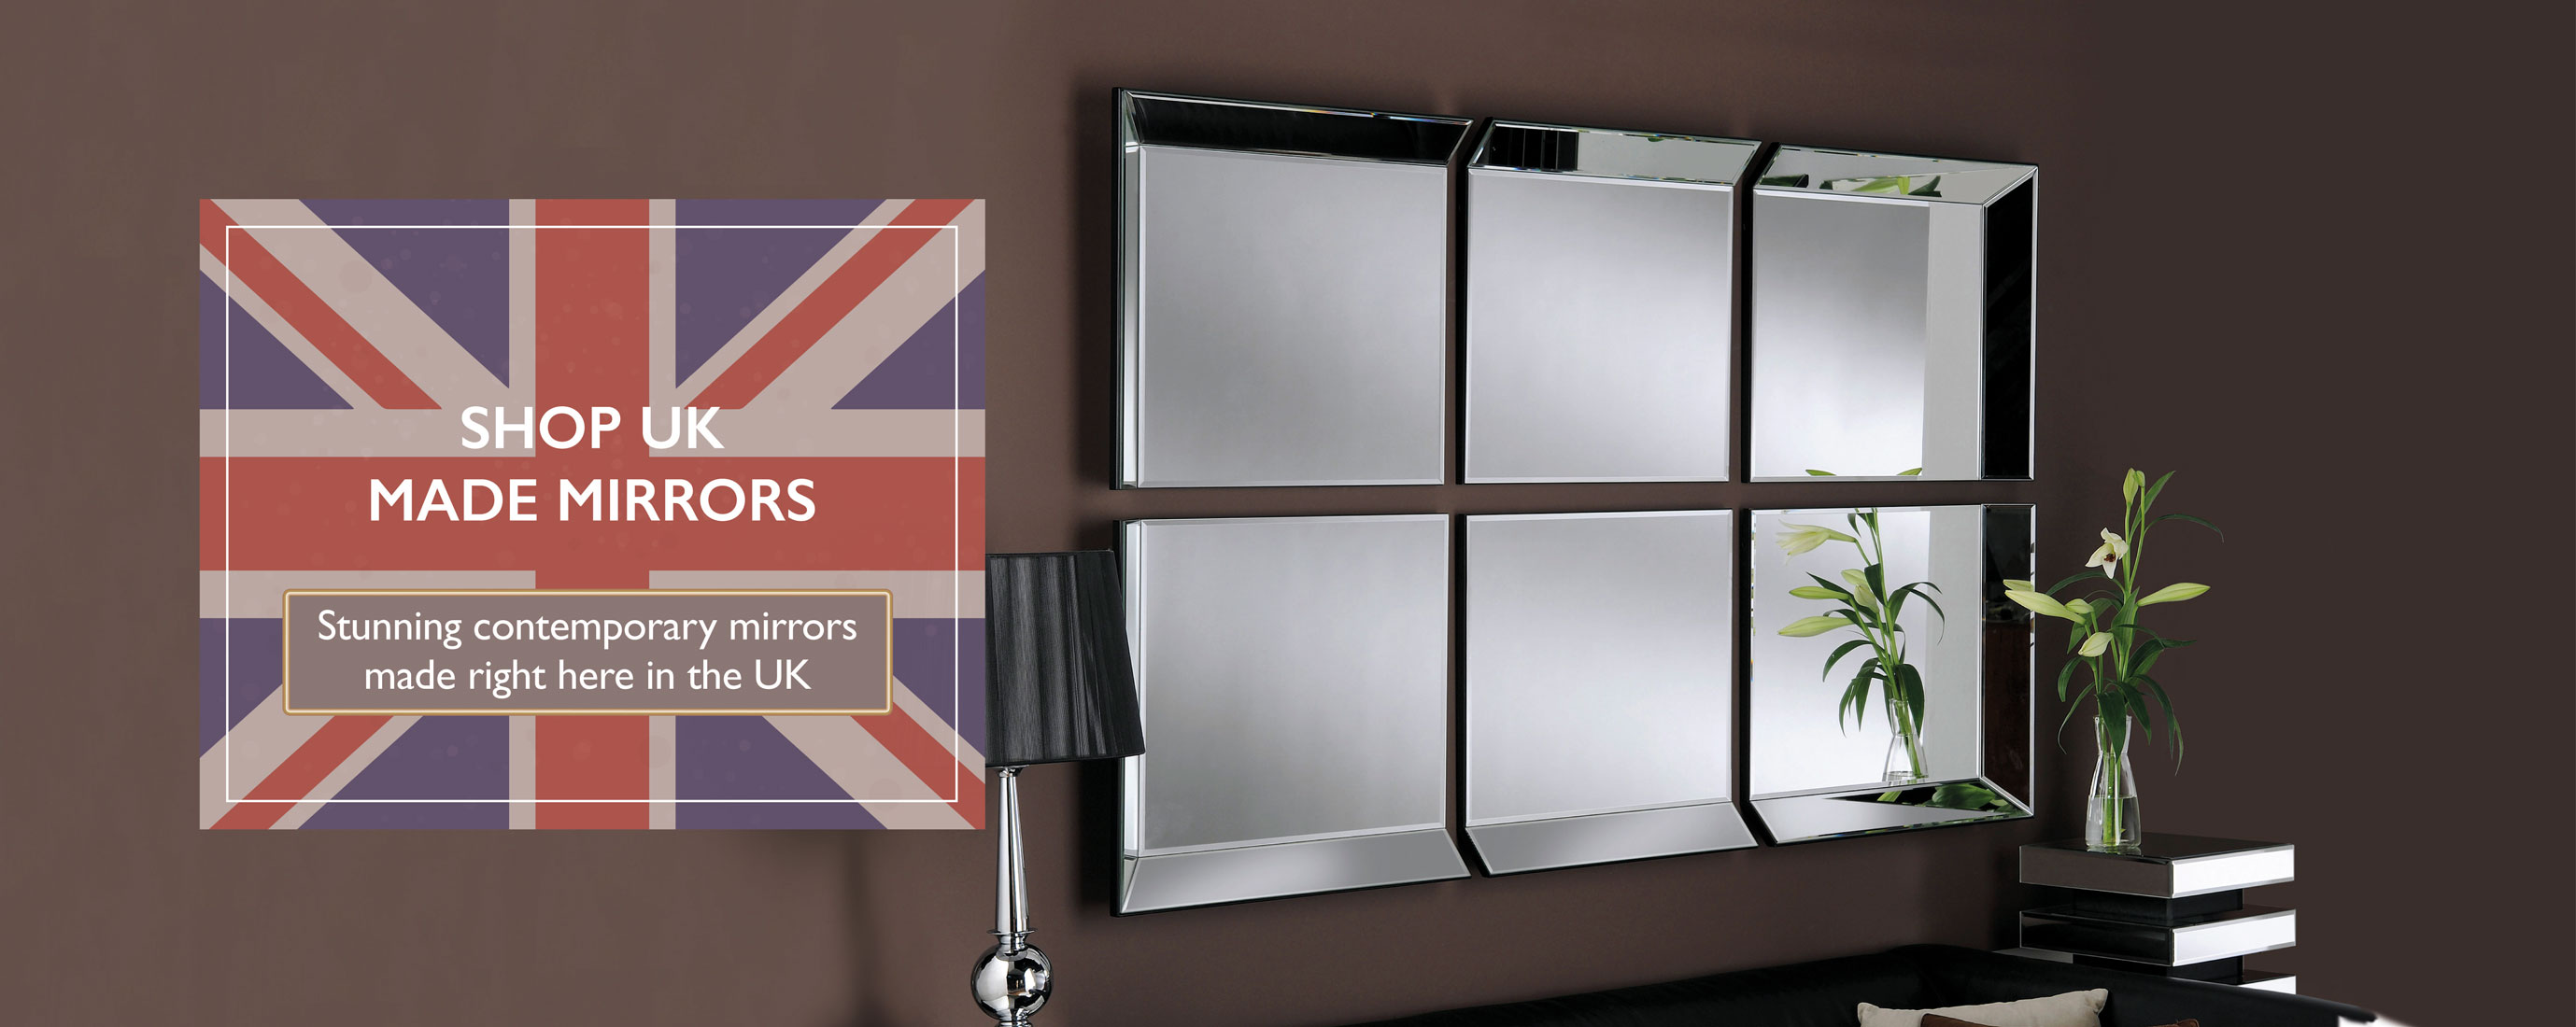 UK Made Mirrors